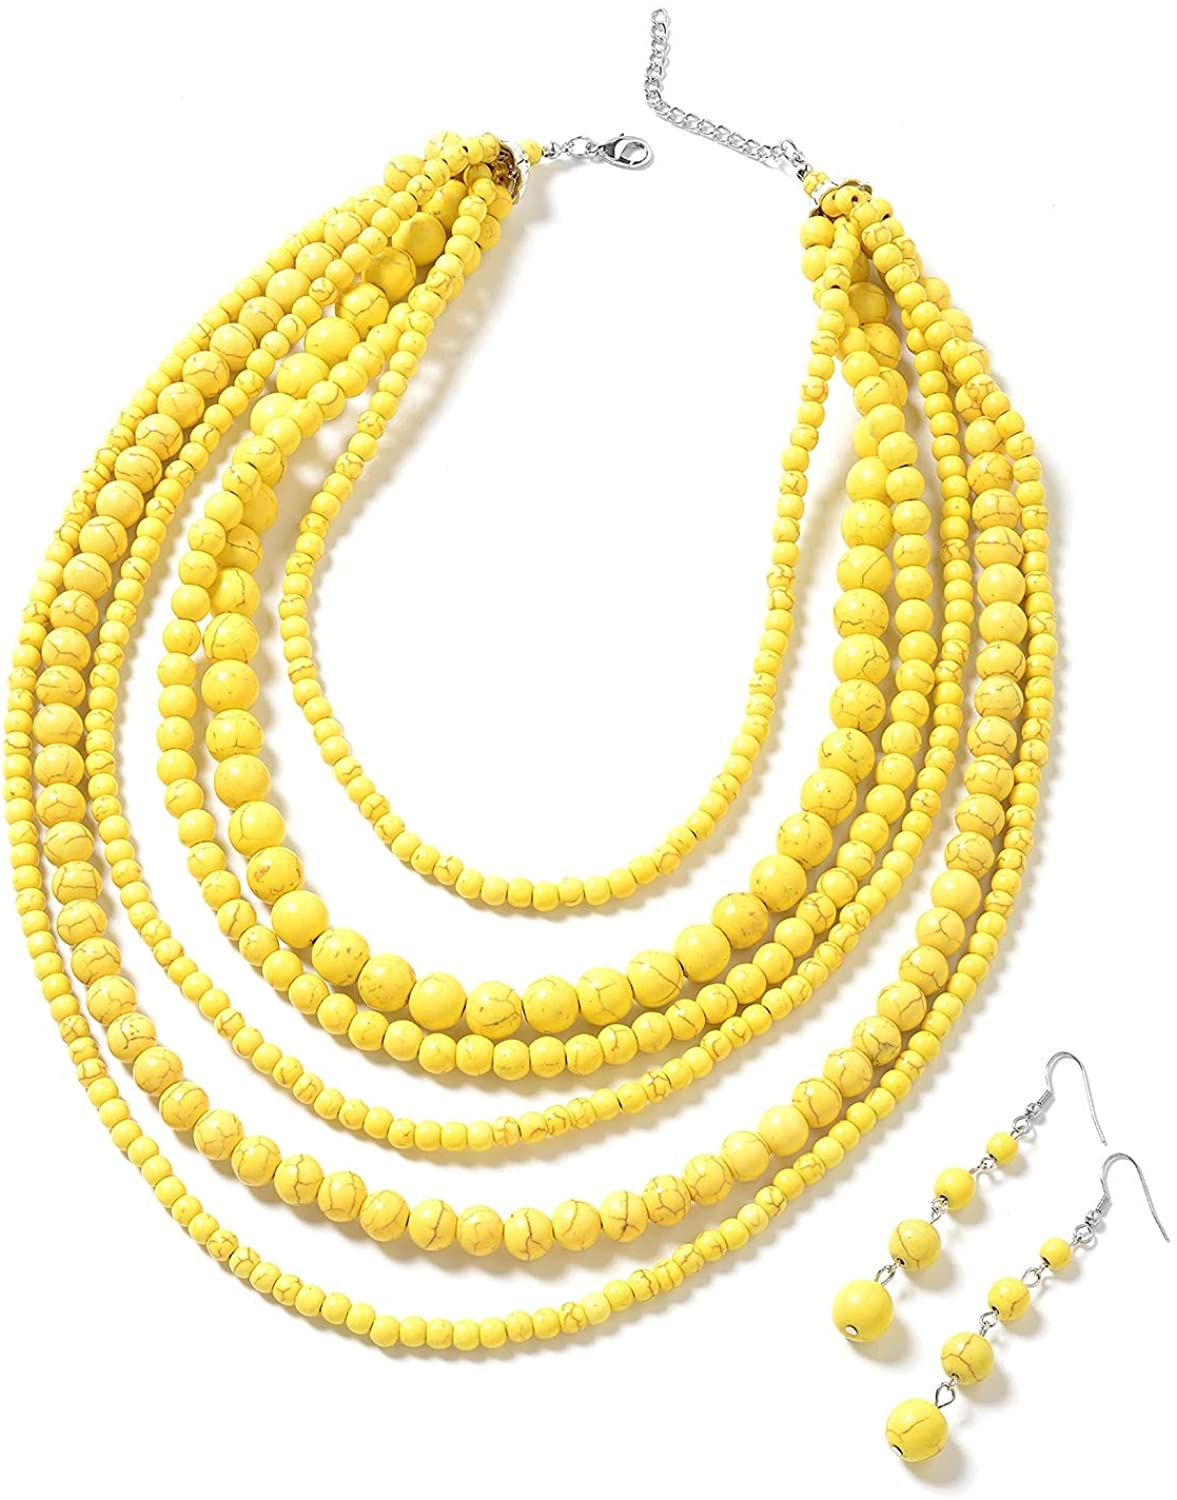 shell beads Adjustable from 18 to 20 inches and plastic beads necklace Multistrand mother of pearl One of my earlier pieces of jewelry.